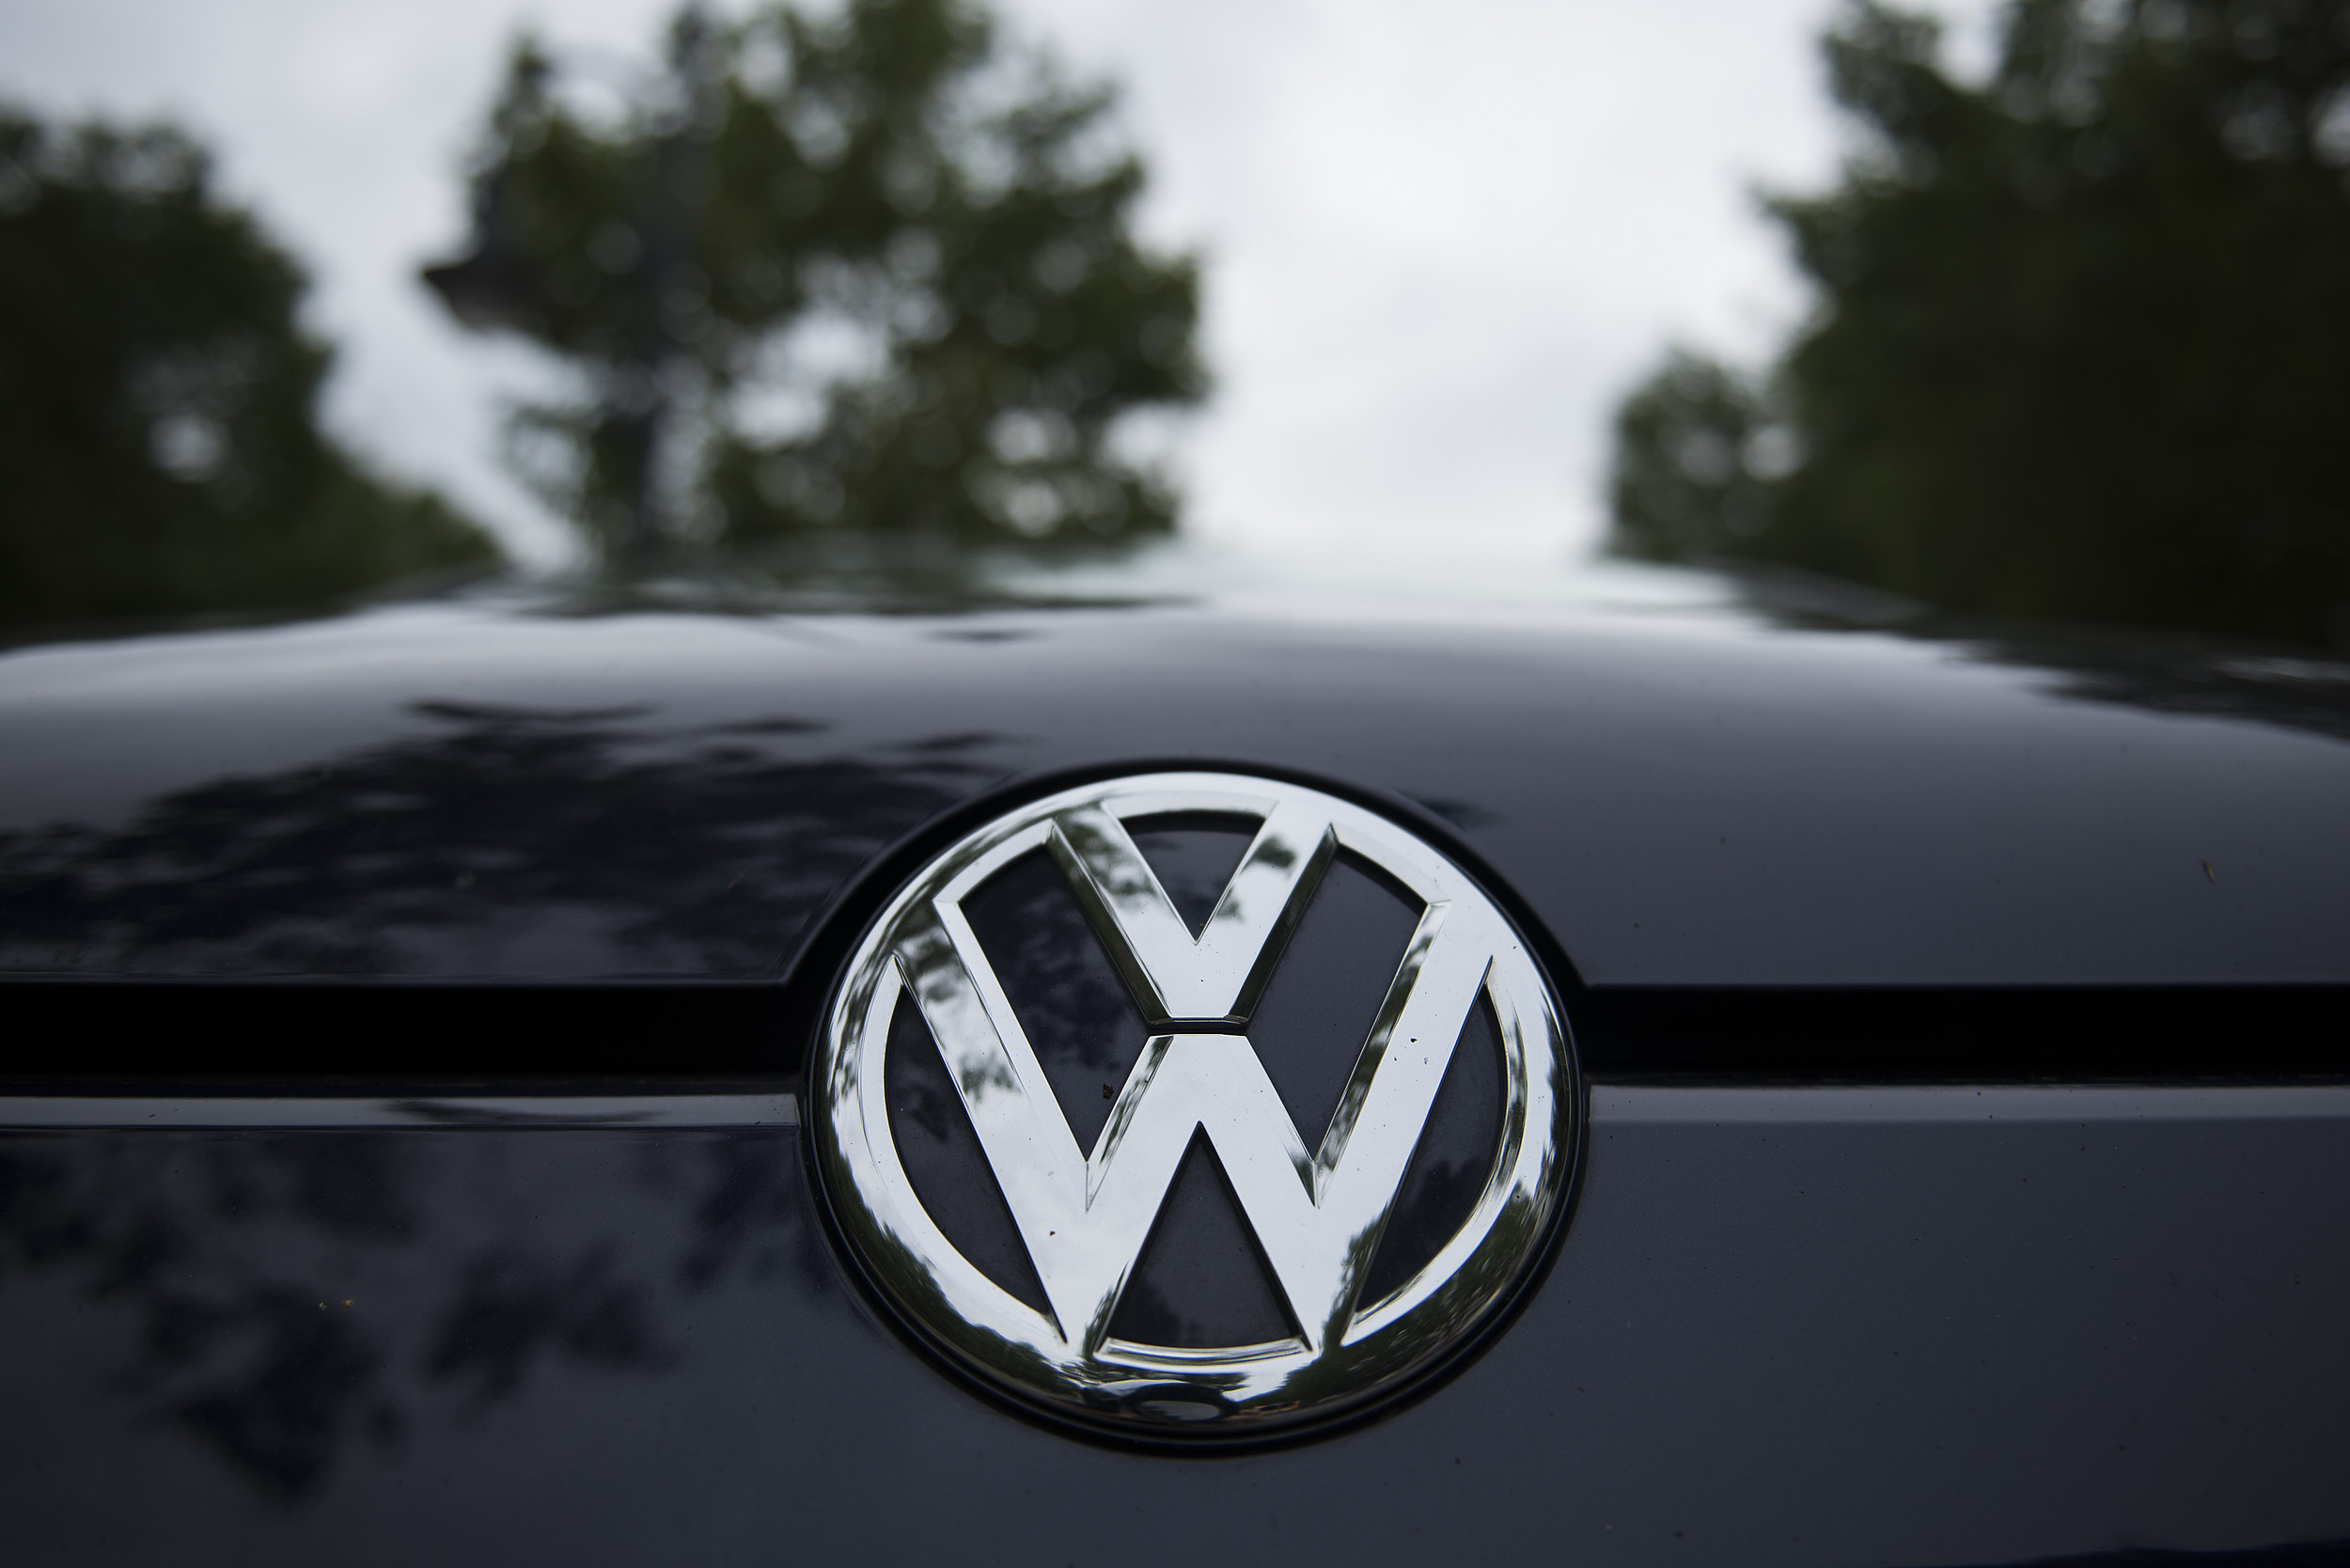 USA judge sentences Volkswagen engineer to 40 months in prison